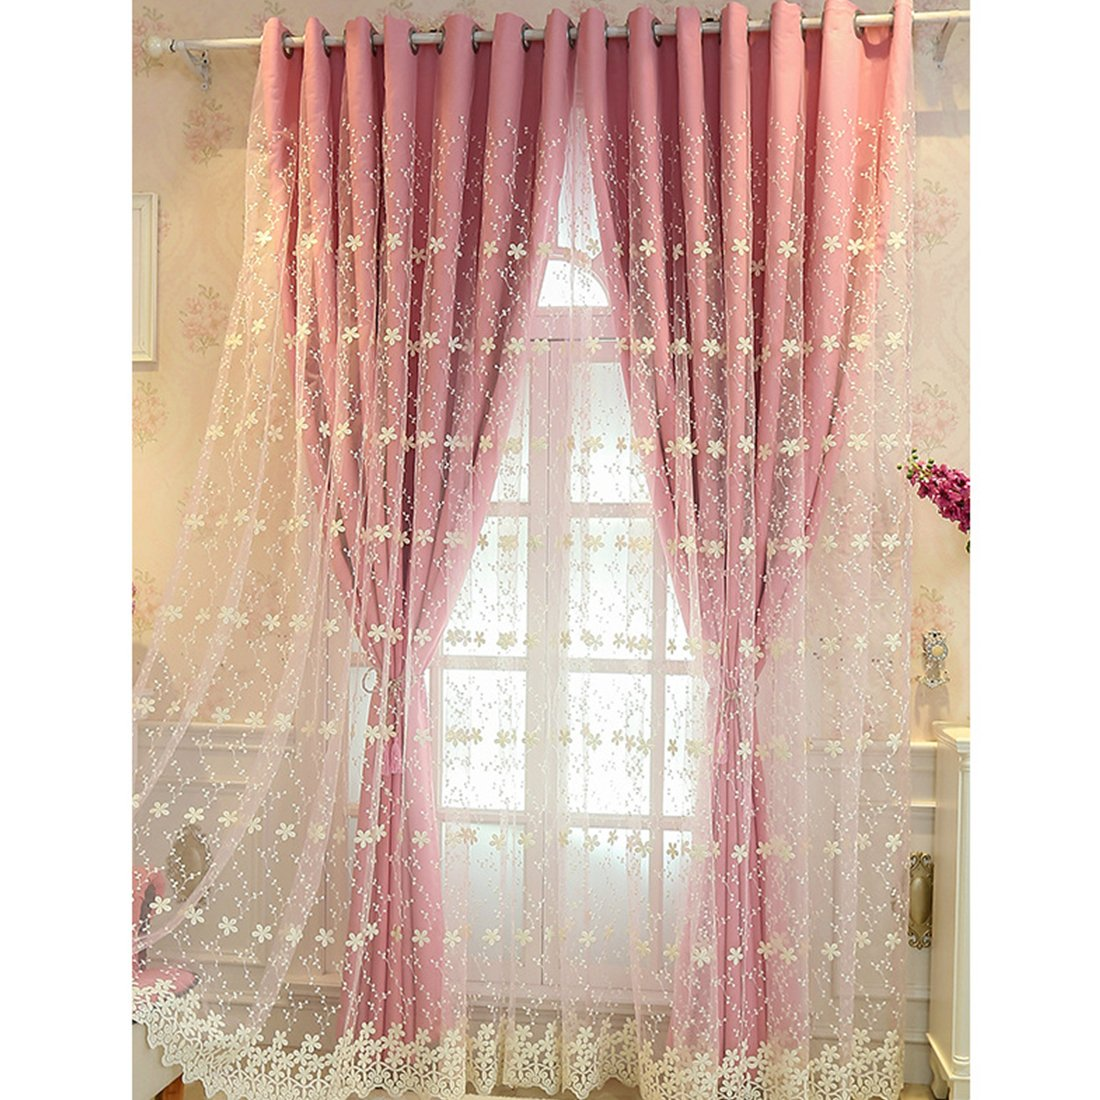 Didihou Embroidered Voile Mix Match Blackout Curtain Double Layer Darkening Thermal Insulated Window Treatment Grommet Drapes for Living Room Girls Bedroom, 1 Panel (42W x 63L Inch, Pink)